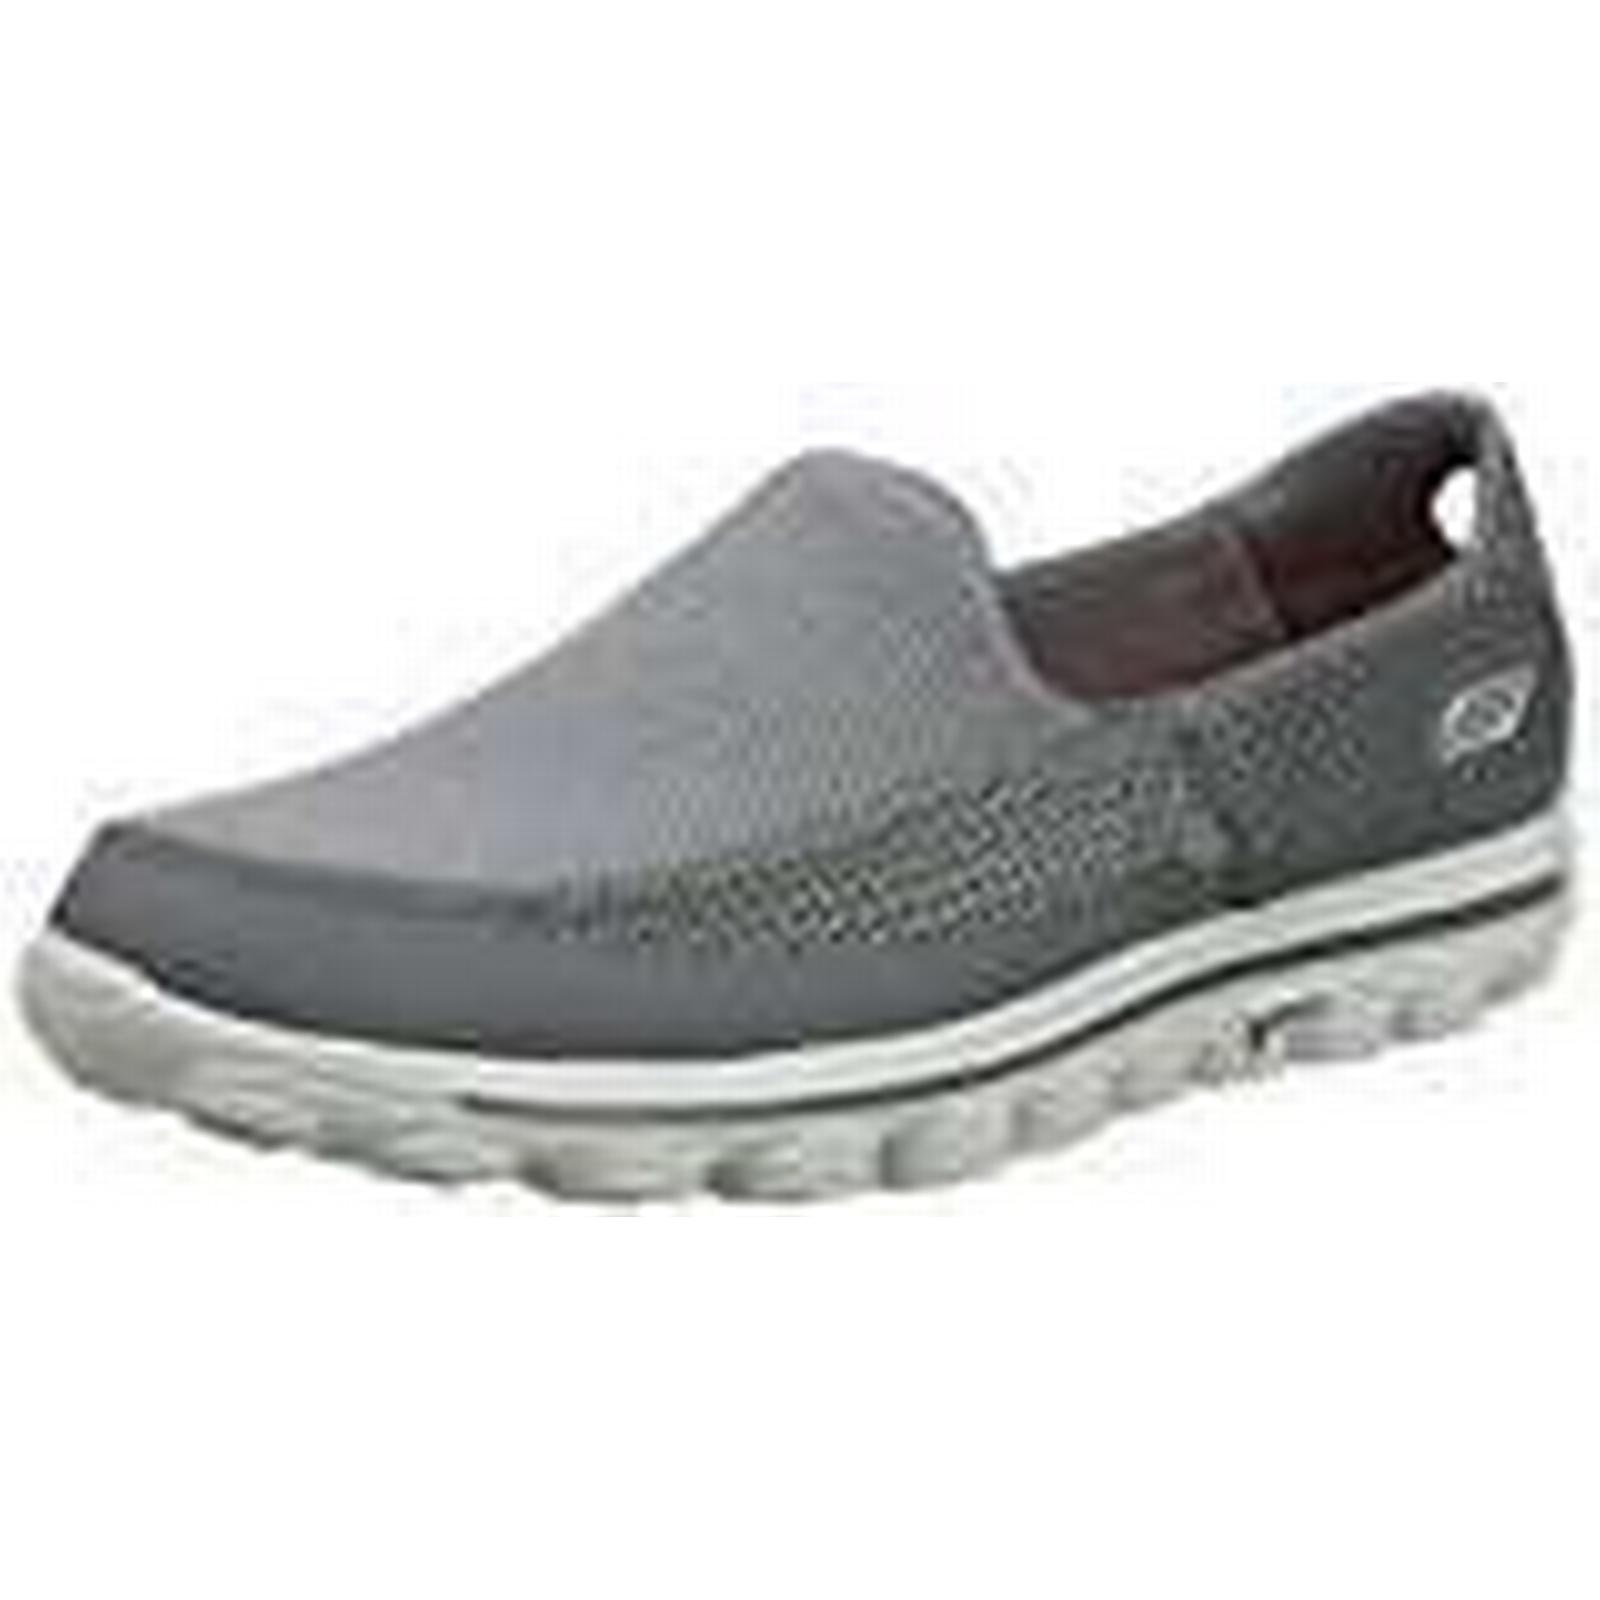 Skechers Go Walk Sneakers,Grey 2, Men's Sneakers,Grey Walk (Charcoal),12 UK 904424